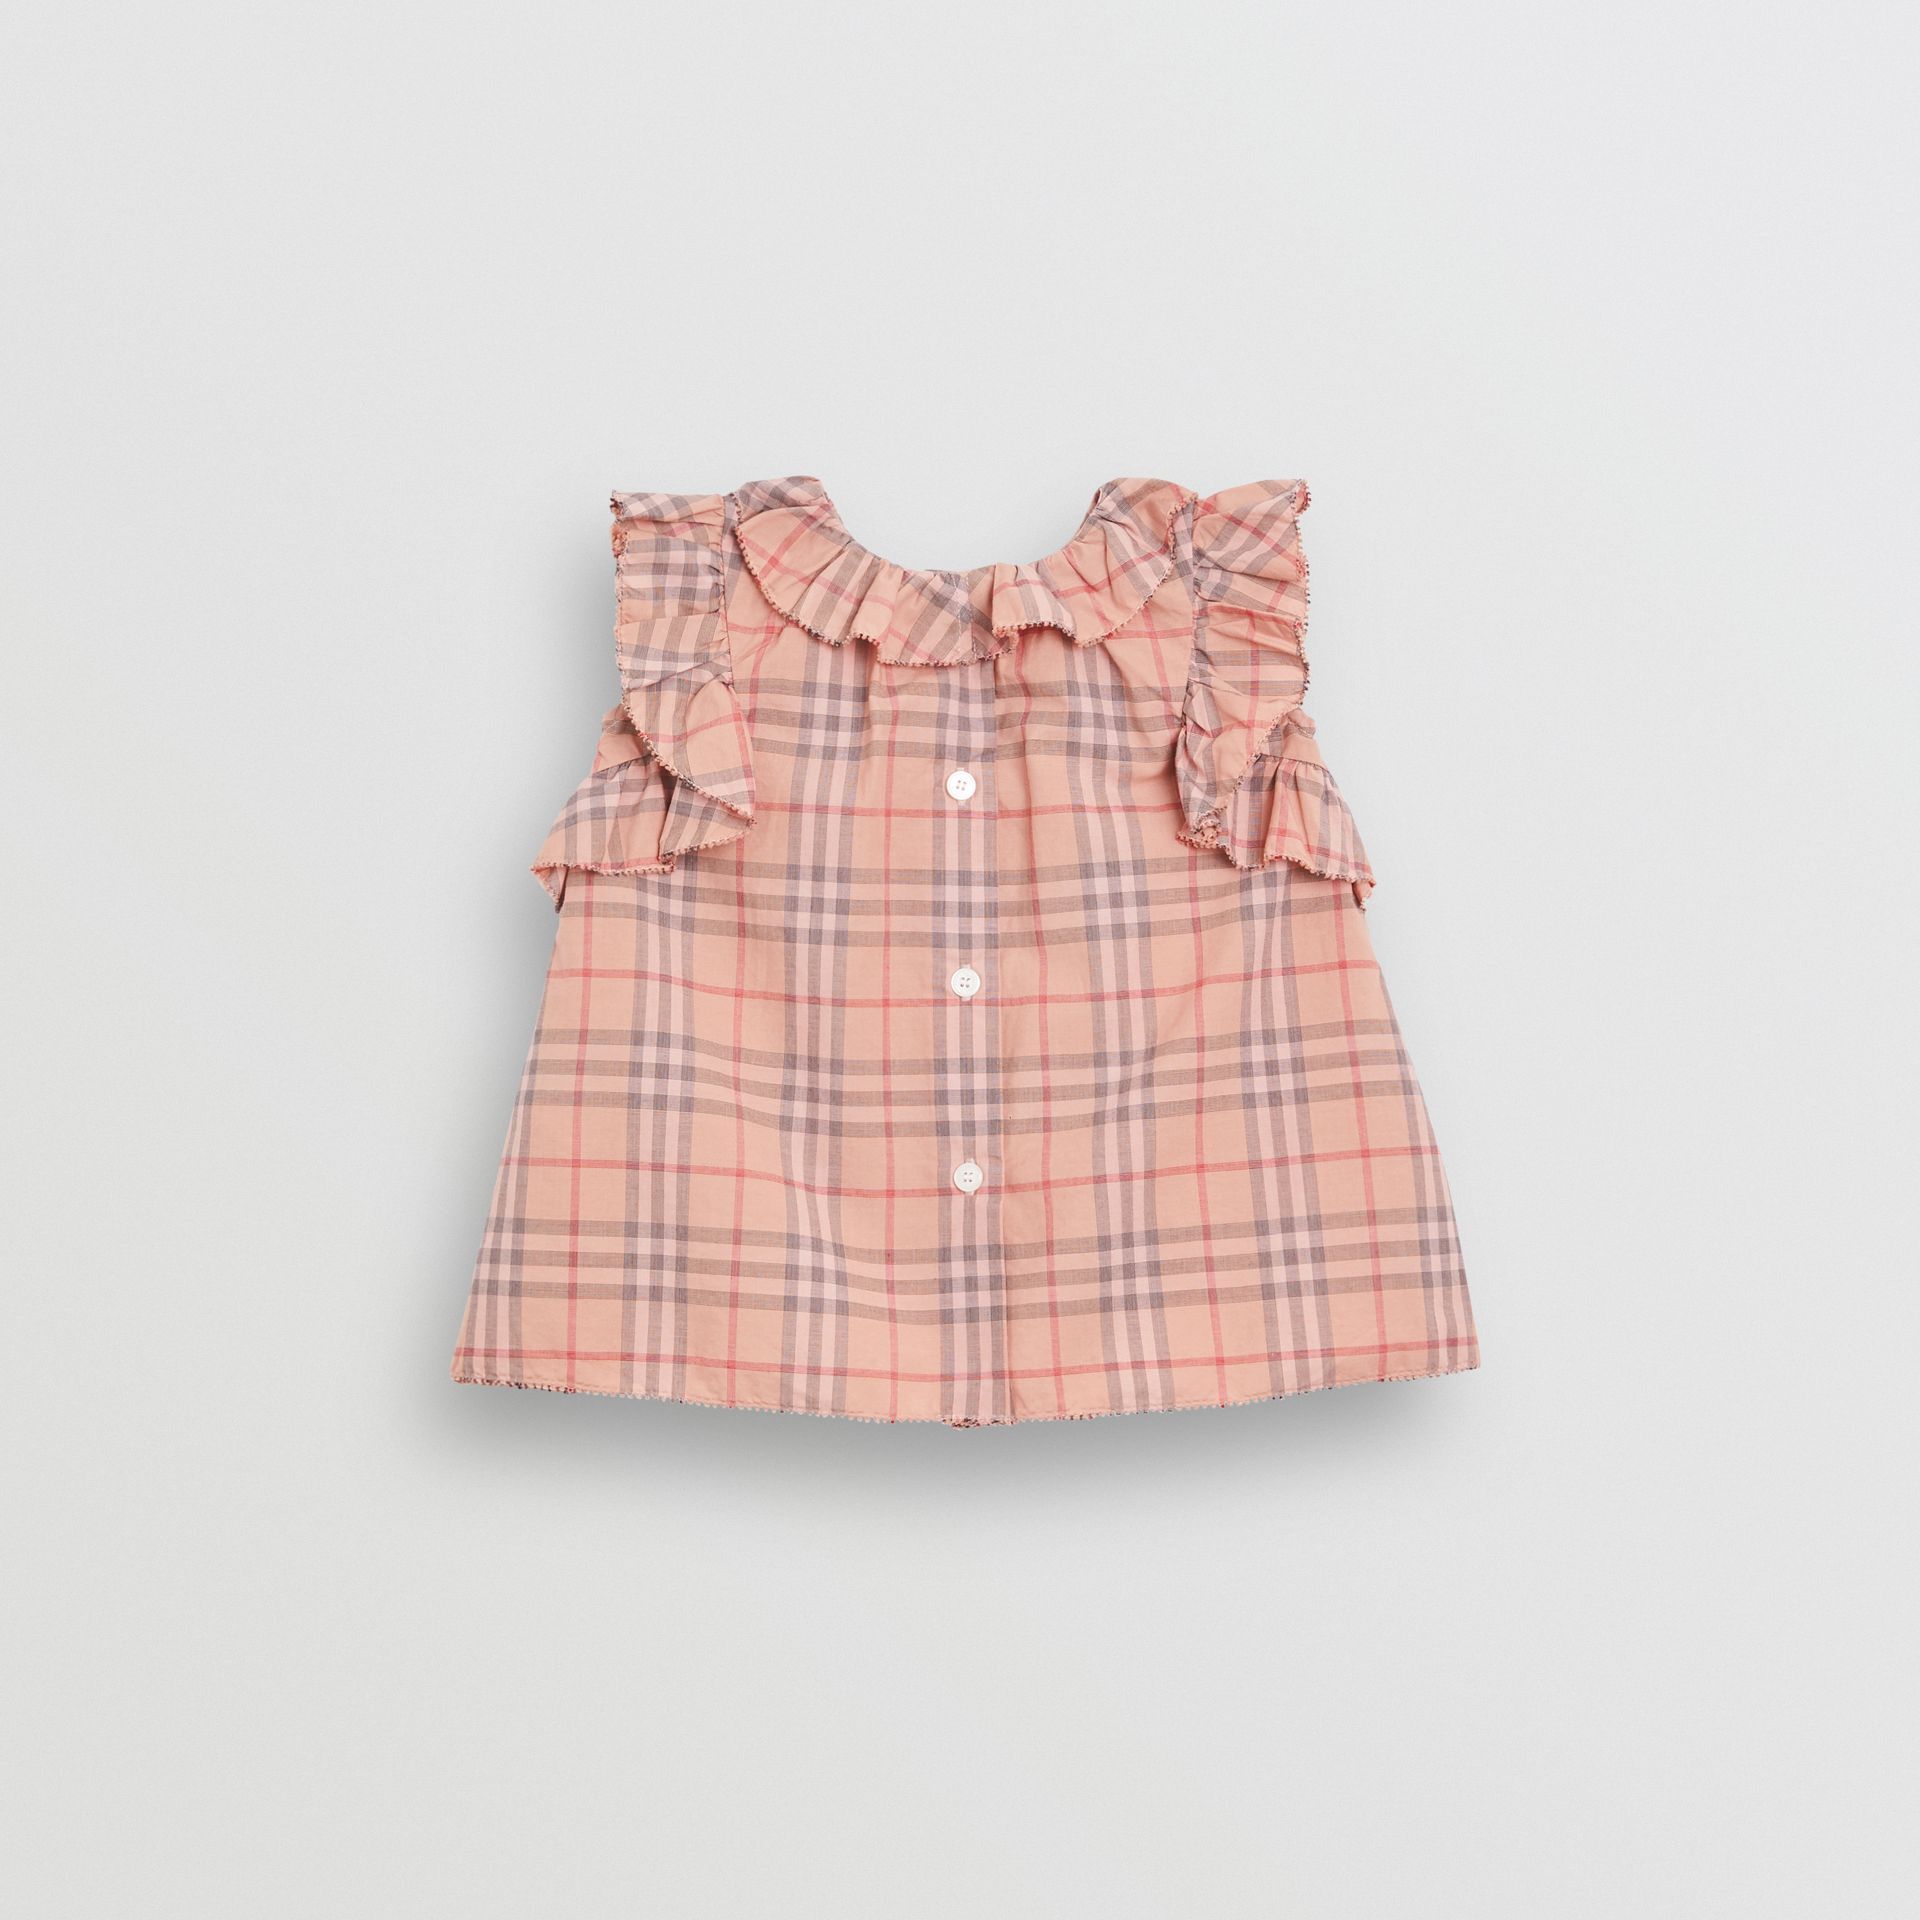 Robe en coton à motif check avec volants et bloomer (Rose Clair) - Enfant | Burberry - photo de la galerie 3